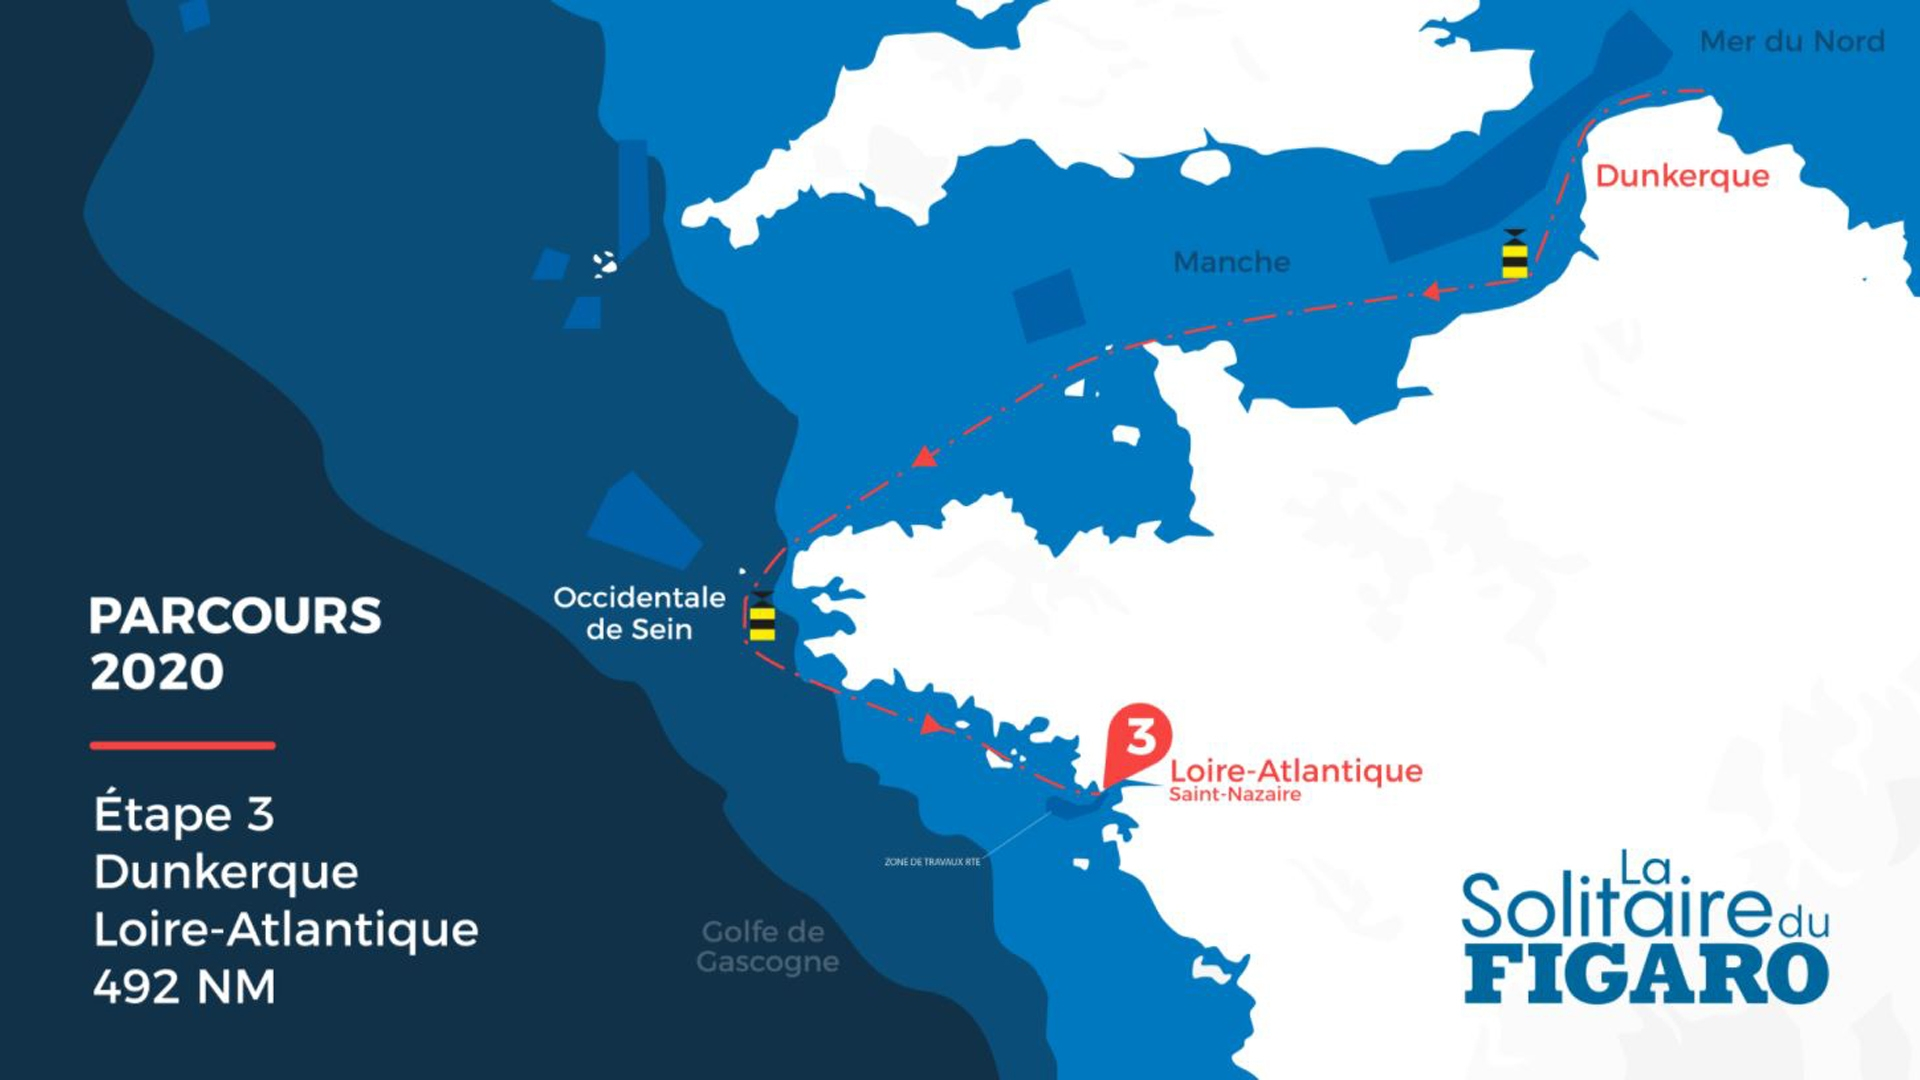 La Solitaire du Figaro - Stage 3 race route